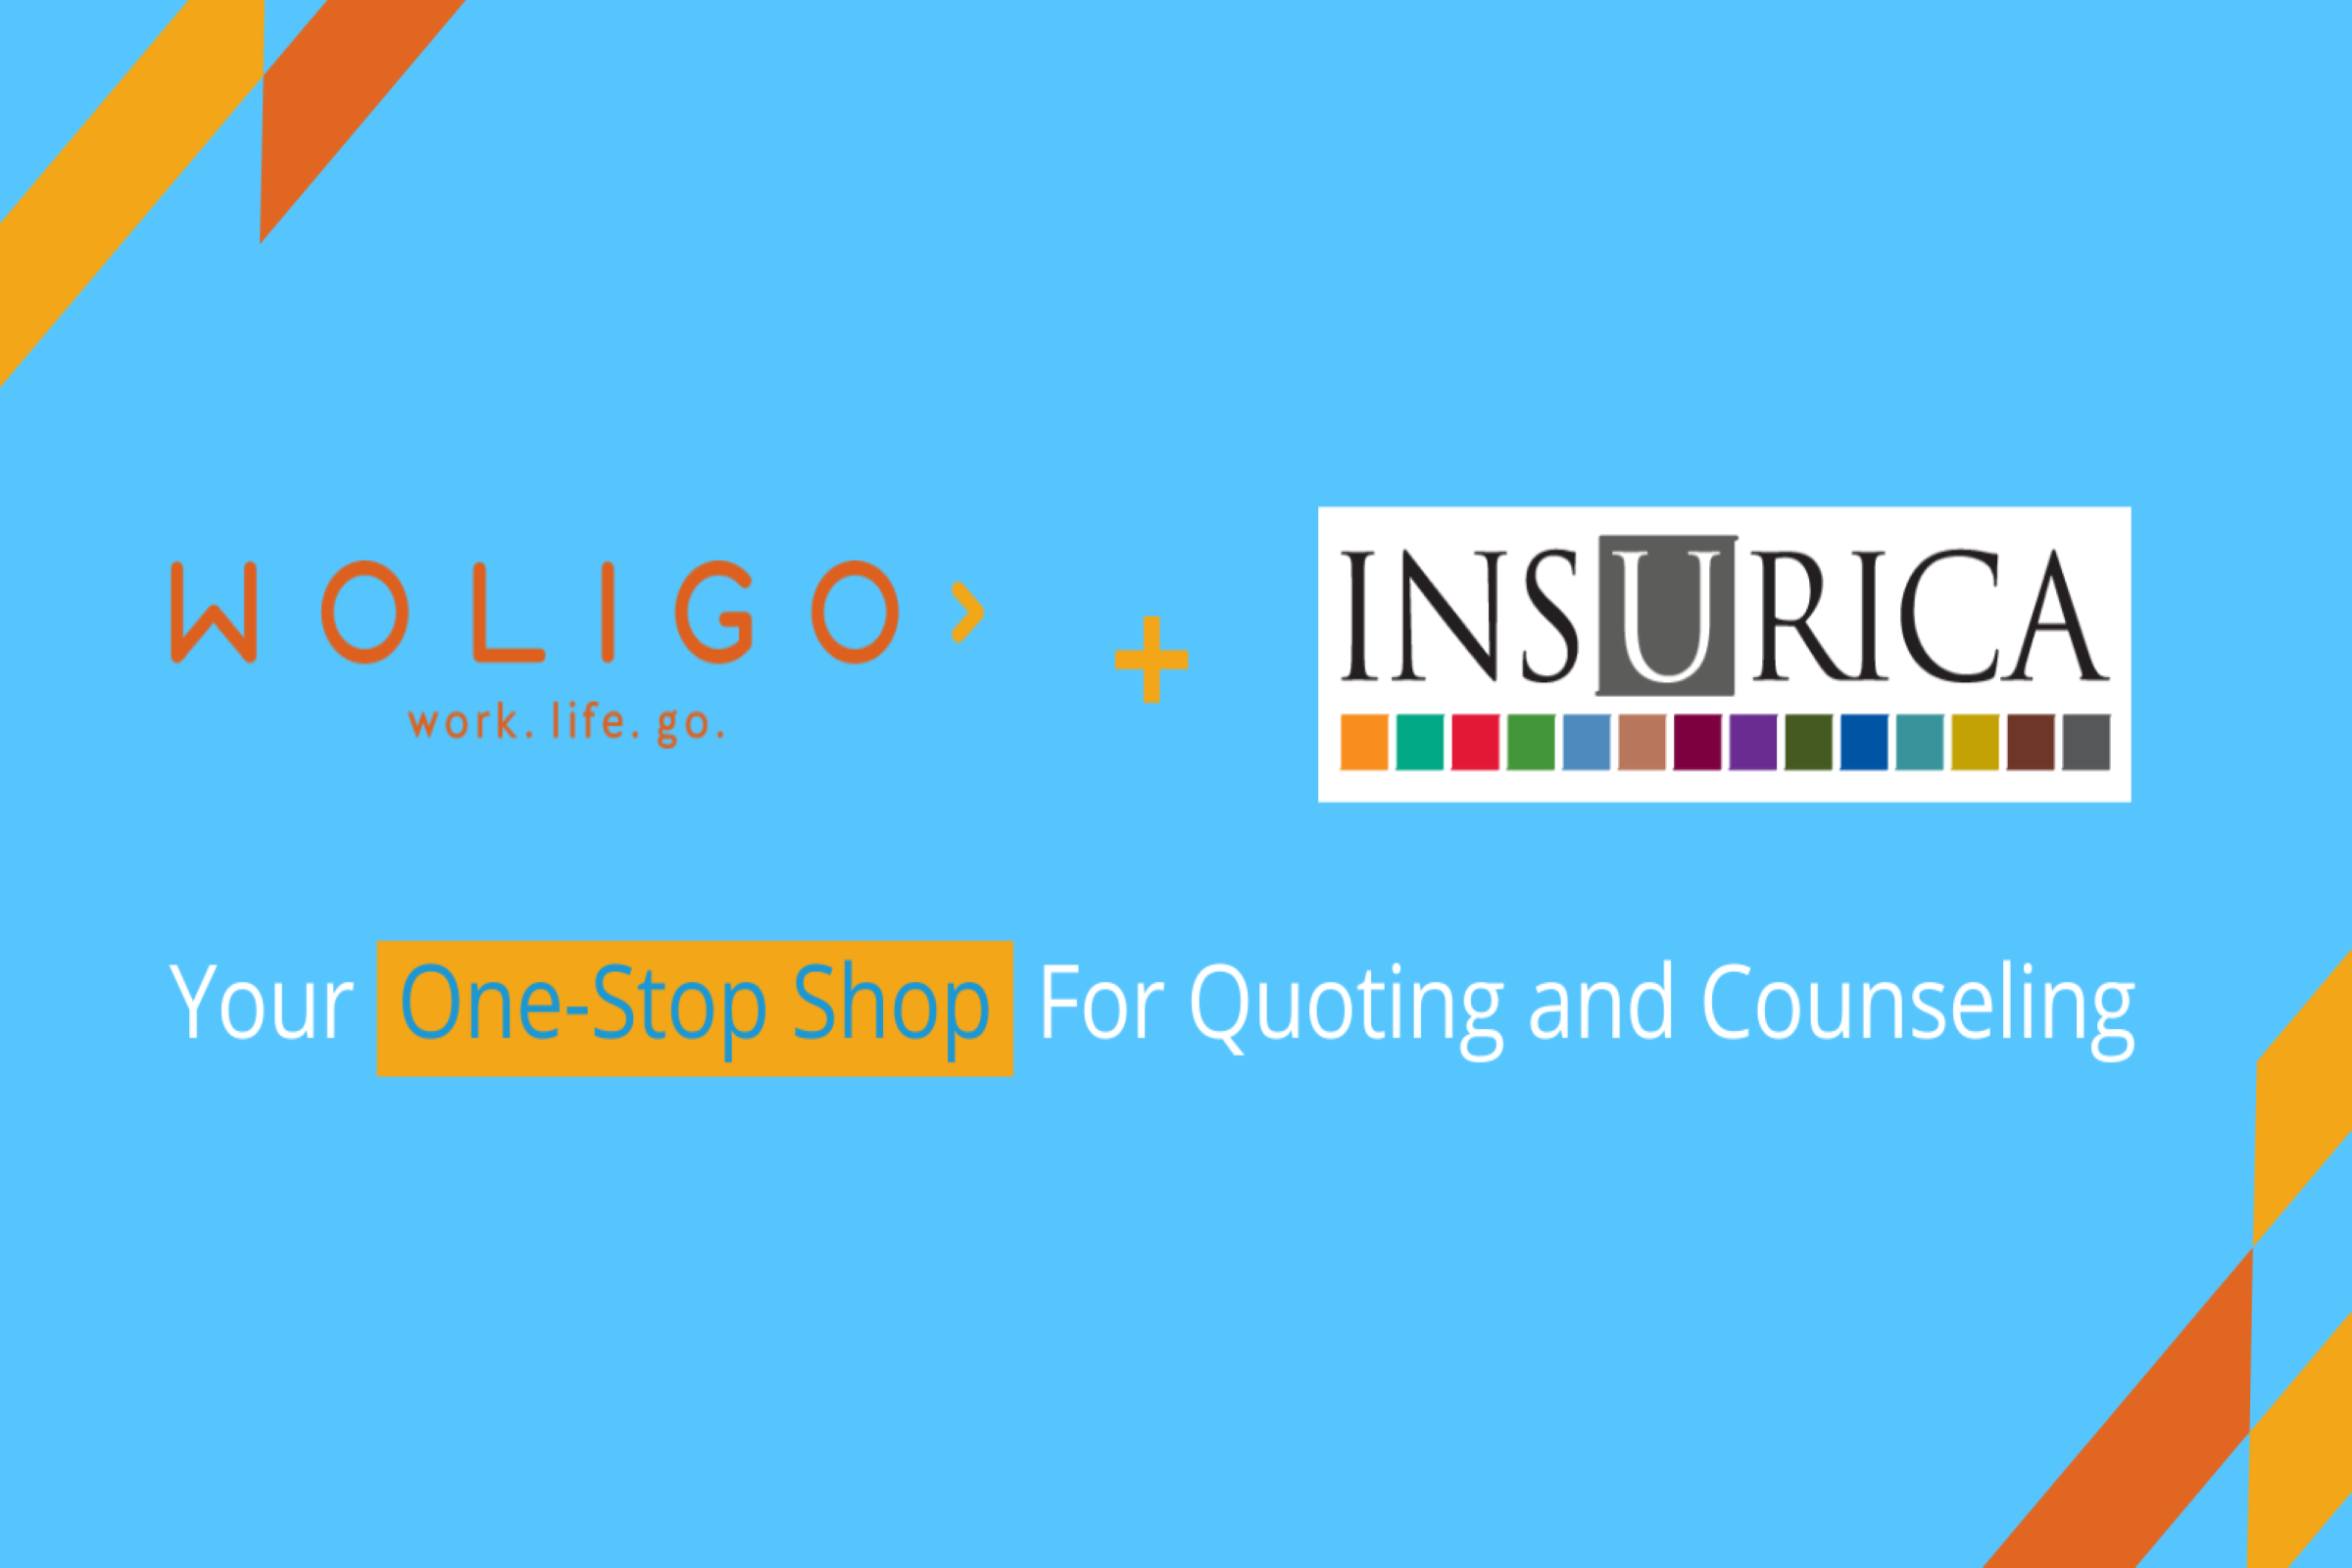 You are currently viewing Woligo Partners with INSURICA to Provide Business Insurance for Self-employed Workers and Small Business Owners